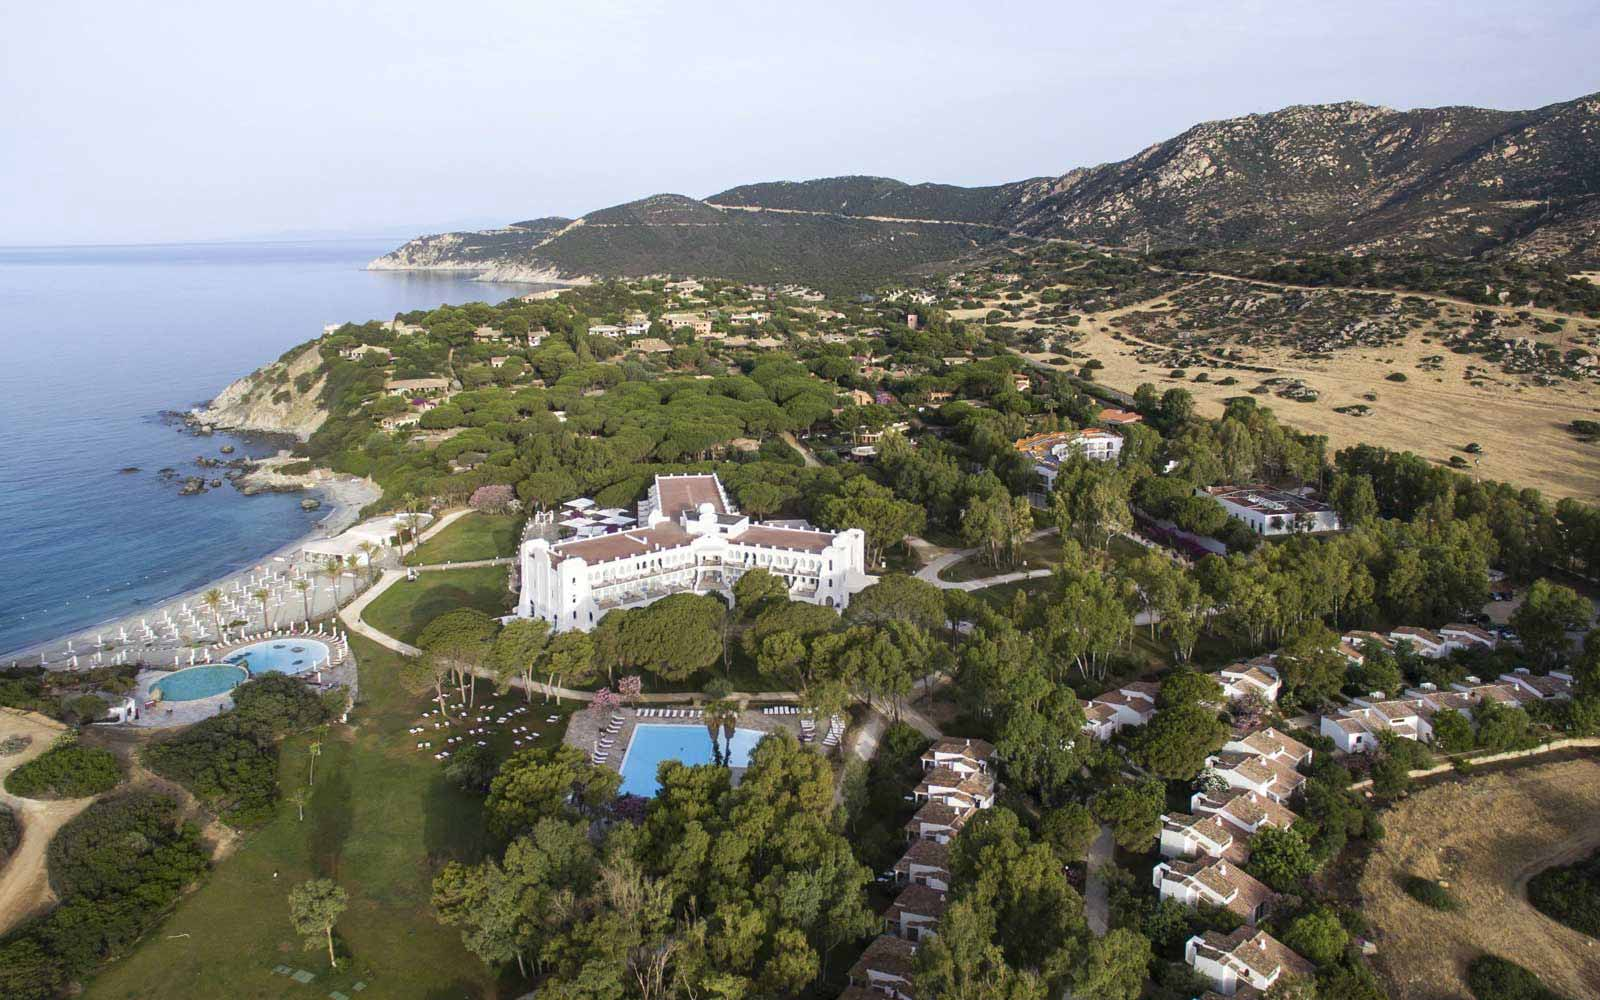 Aerial view at Falkensteiner Resort Capo Boi